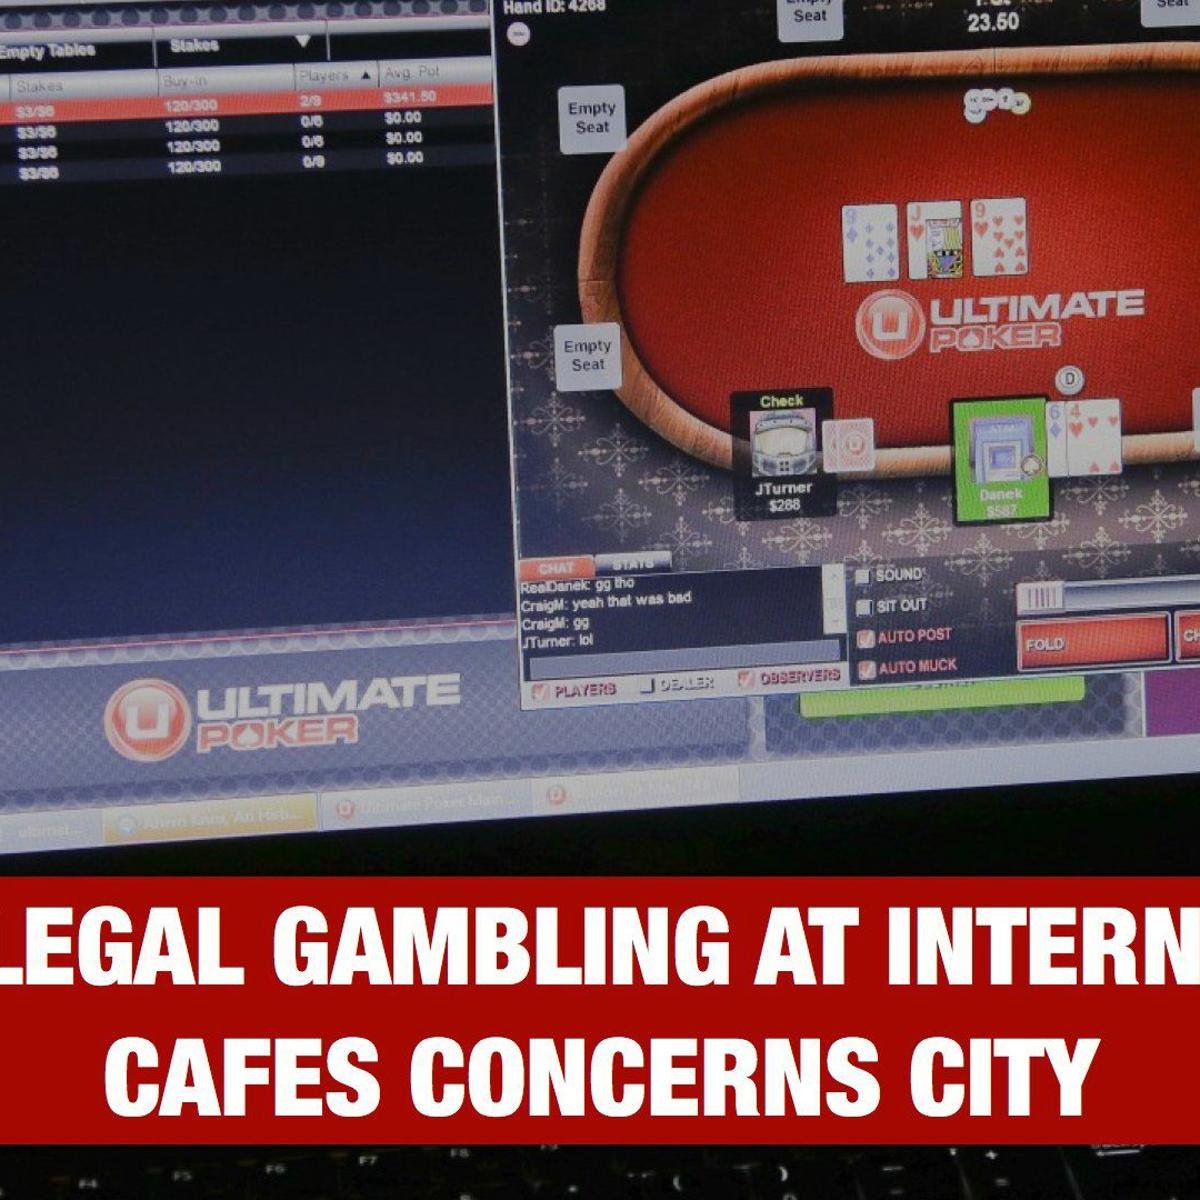 City waiting for signal to stop illegal gambling in Internet